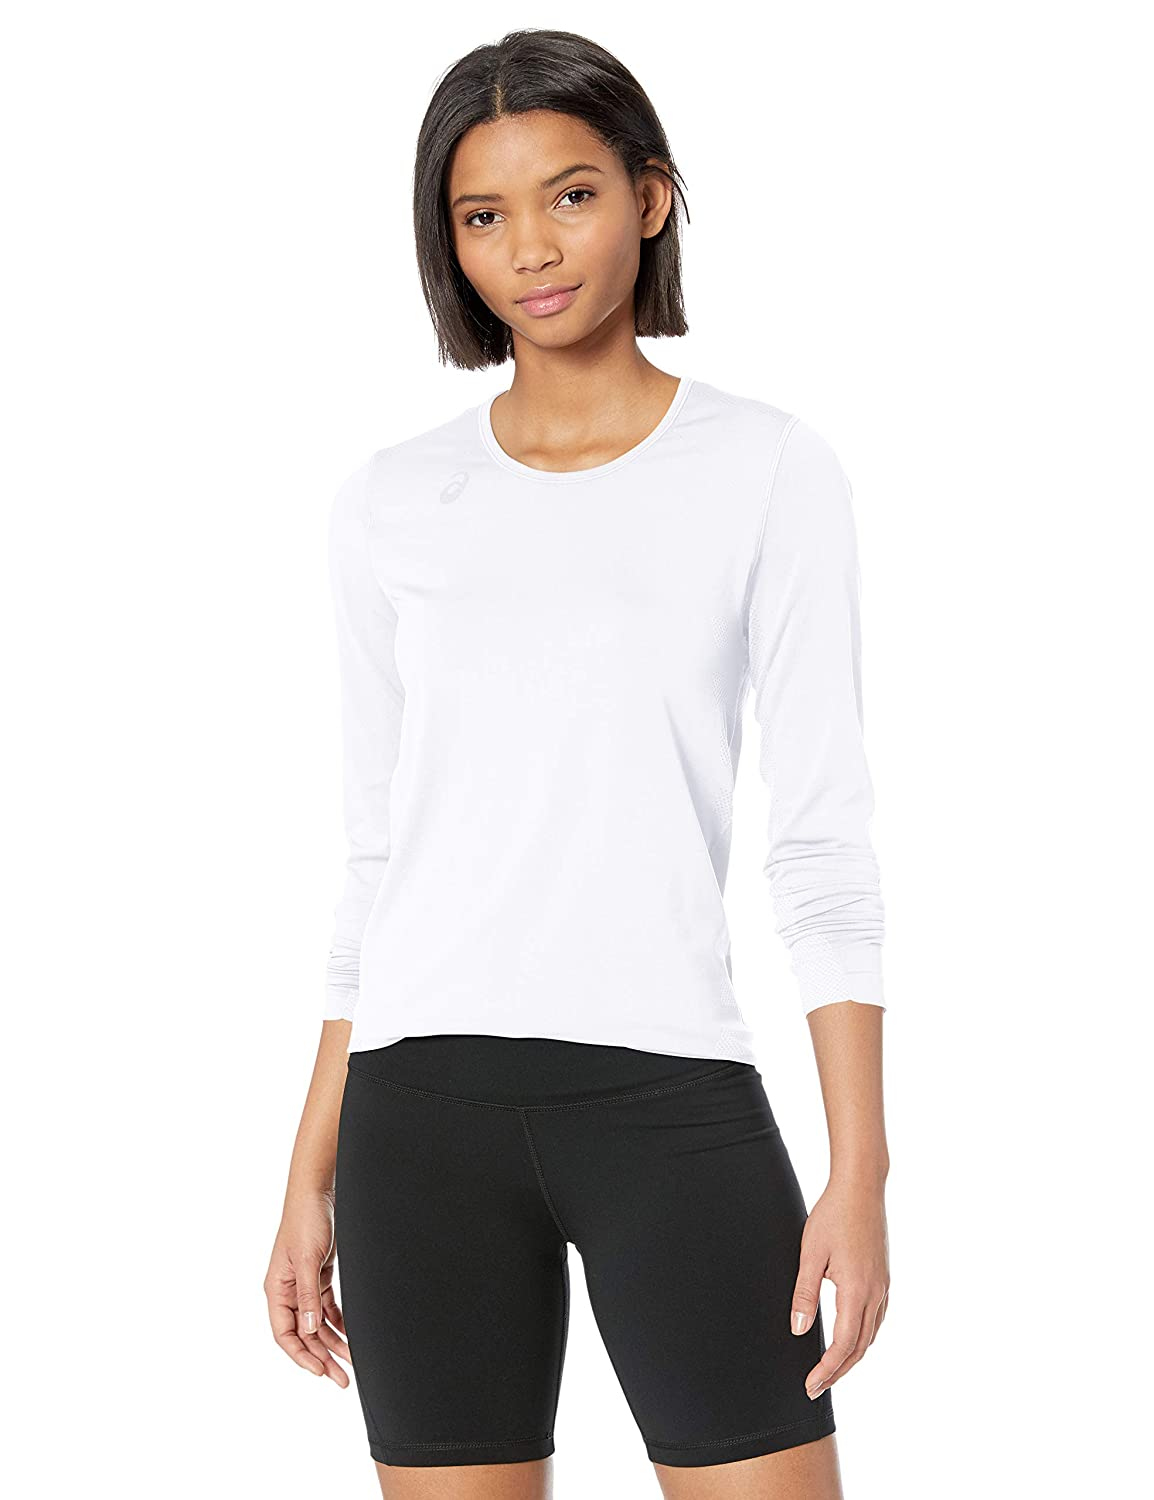 ASICS Damen Tactic Court Long Sleeve Jersey, Damen, BT3062